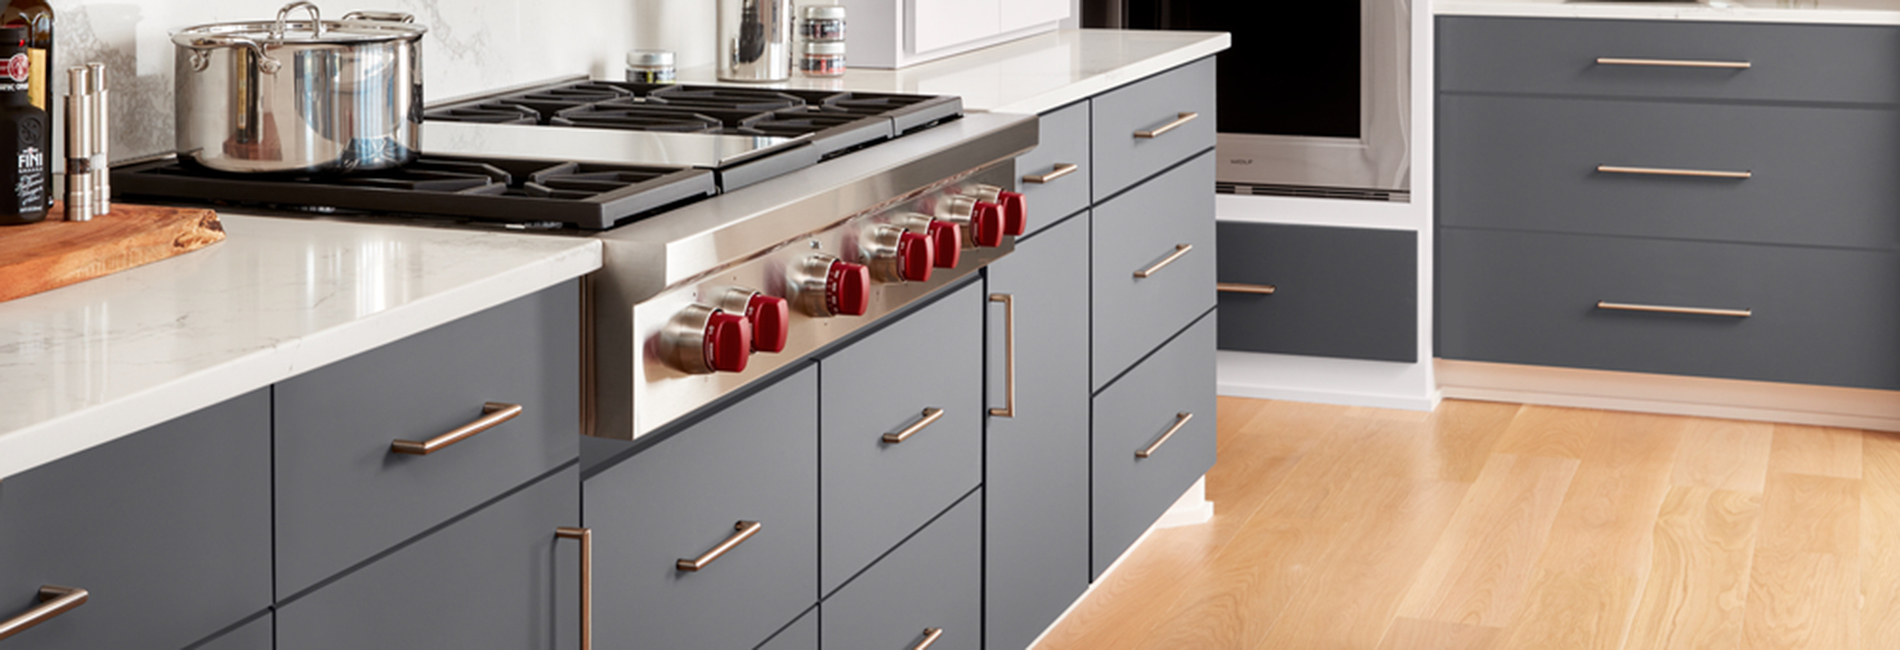 J0757 Bianco Dover and J0724 Grigio Bromo Kitchen countertop and cabinets